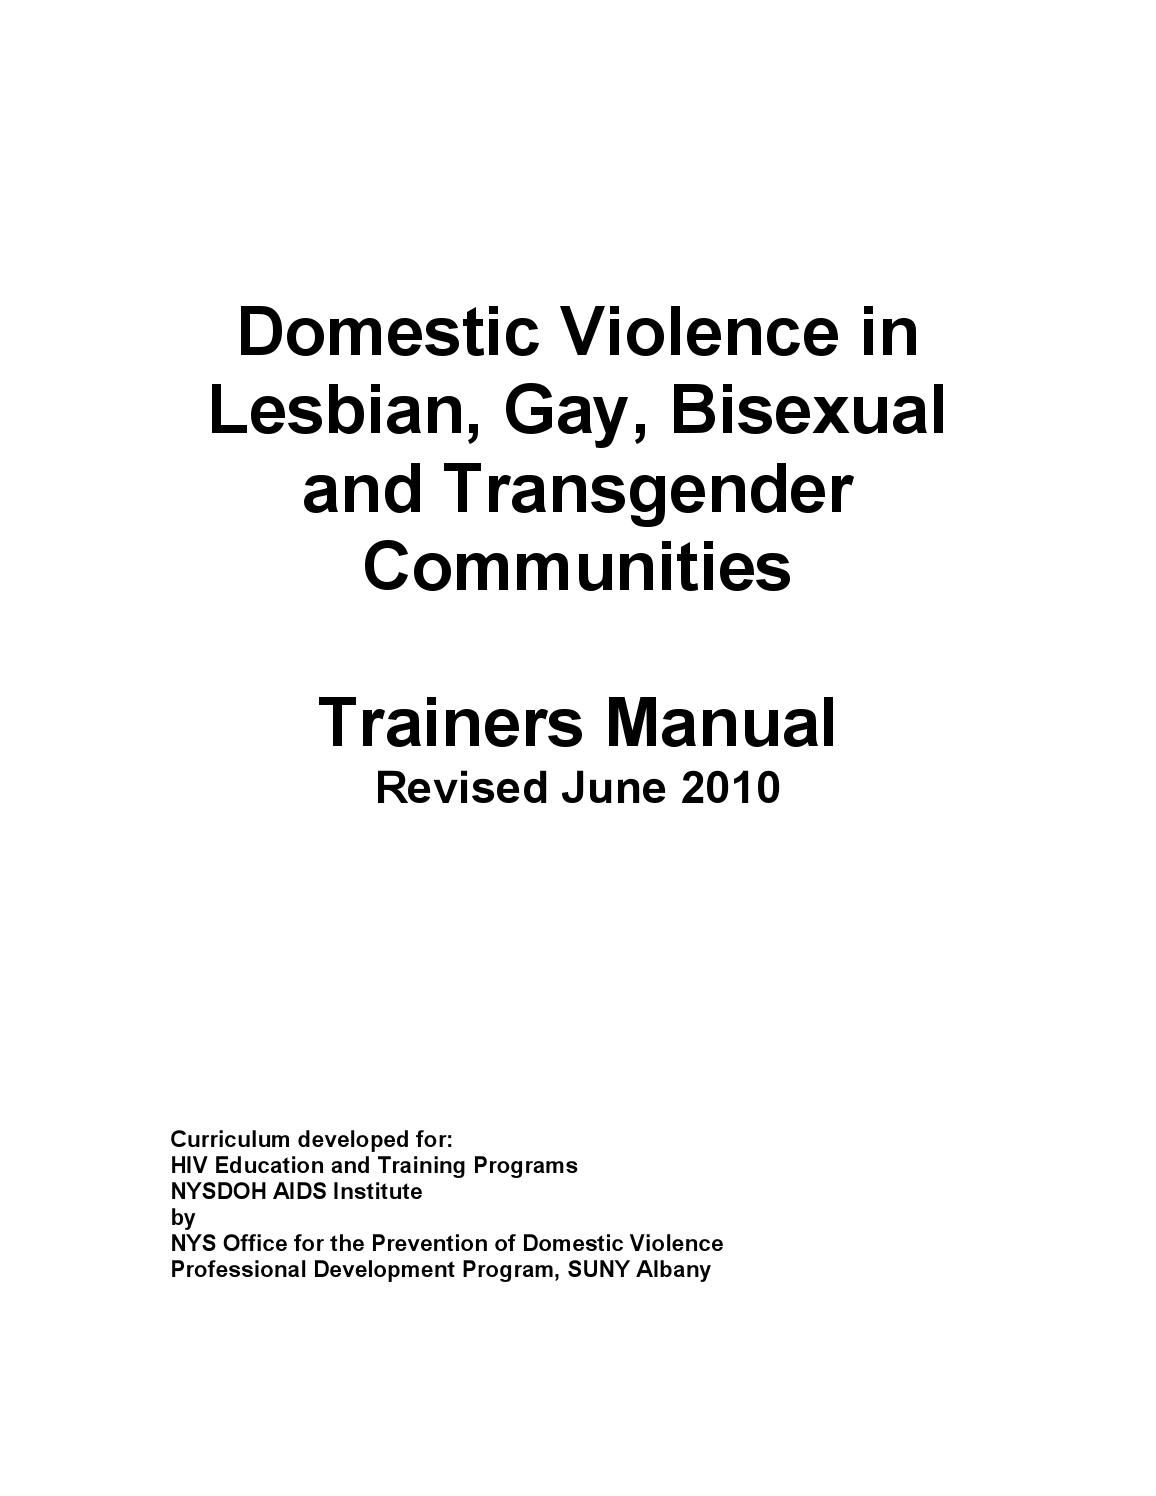 Domestic Violence In Lgbt Communities Trainers Manual Pinterest